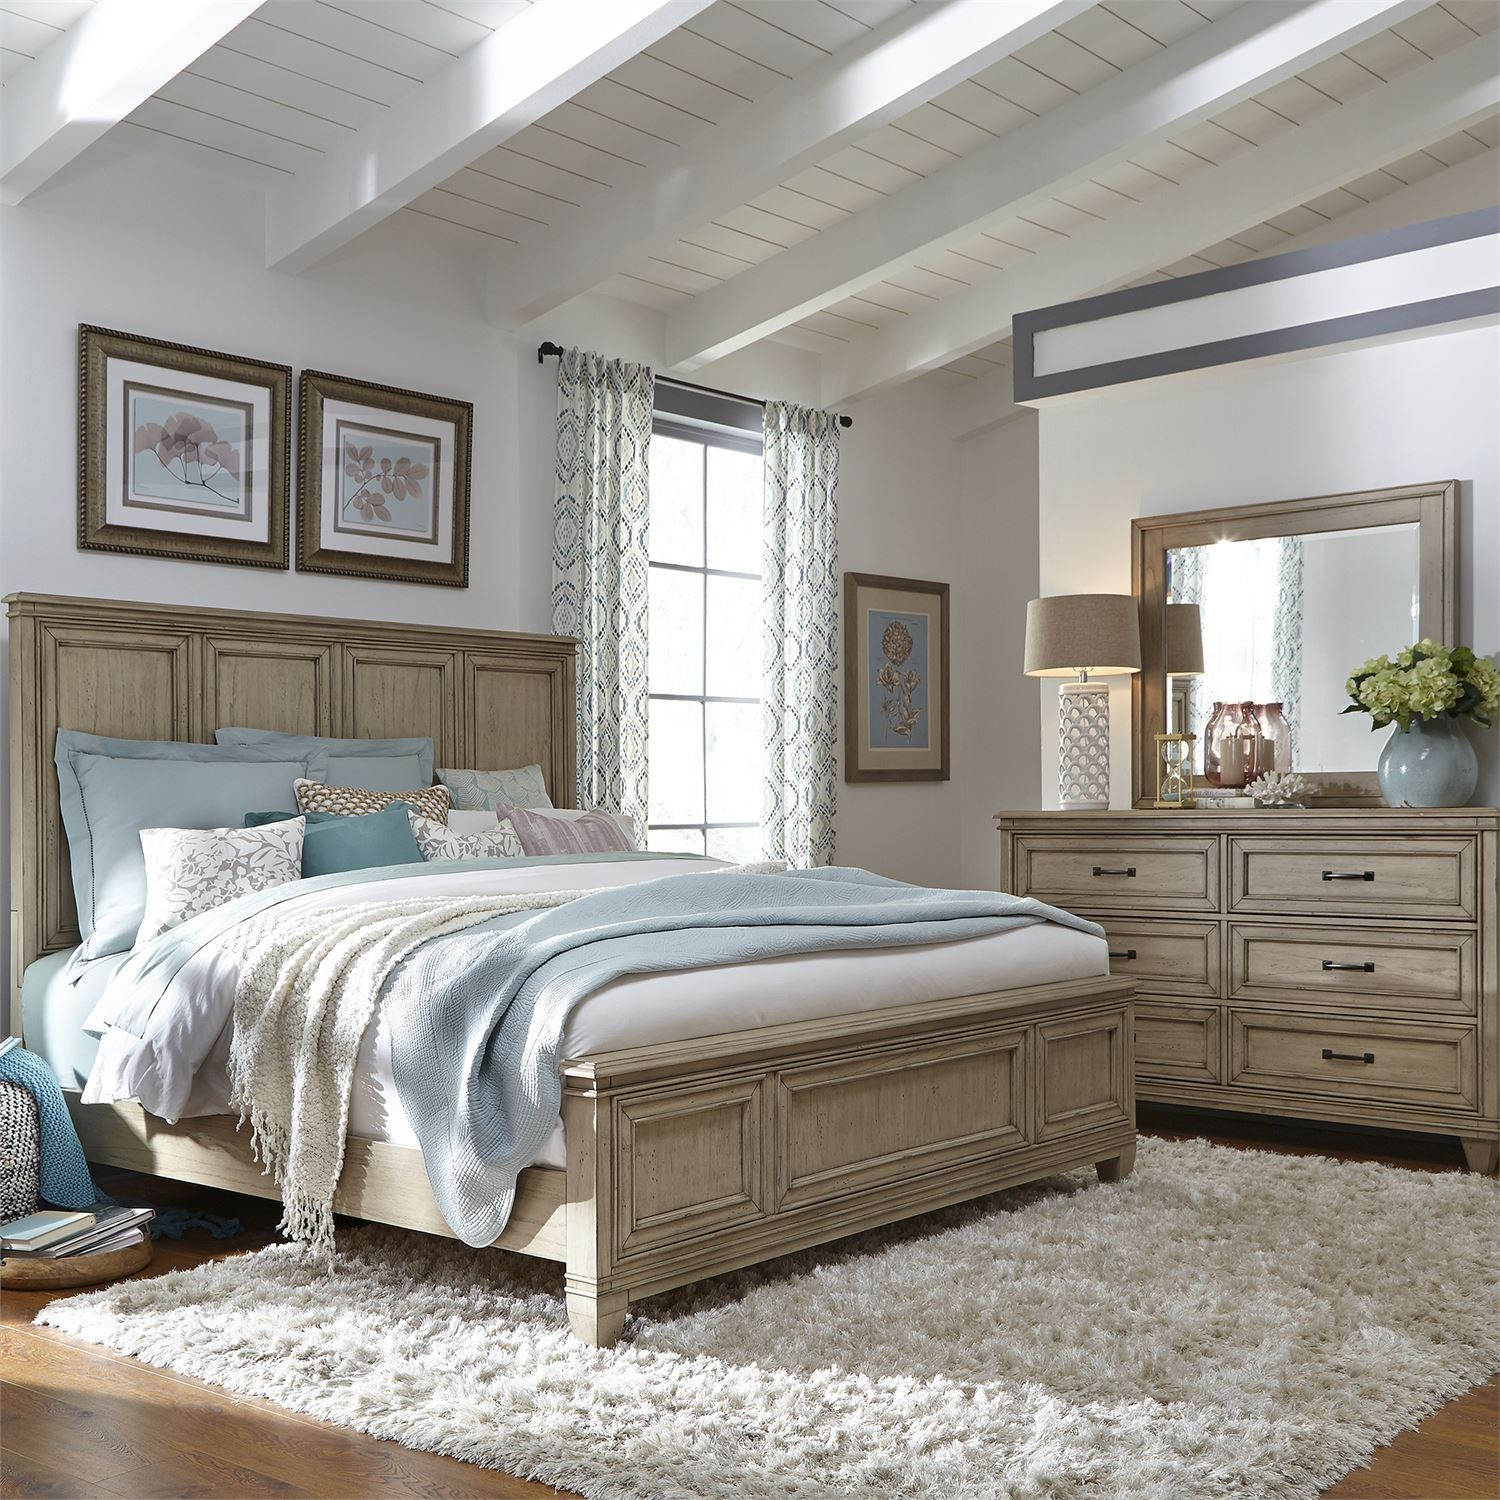 Liberty Furniture 573 Queen Panel Bed, Dresser & Mirror  - Item Number: 573-BR-QPBDM